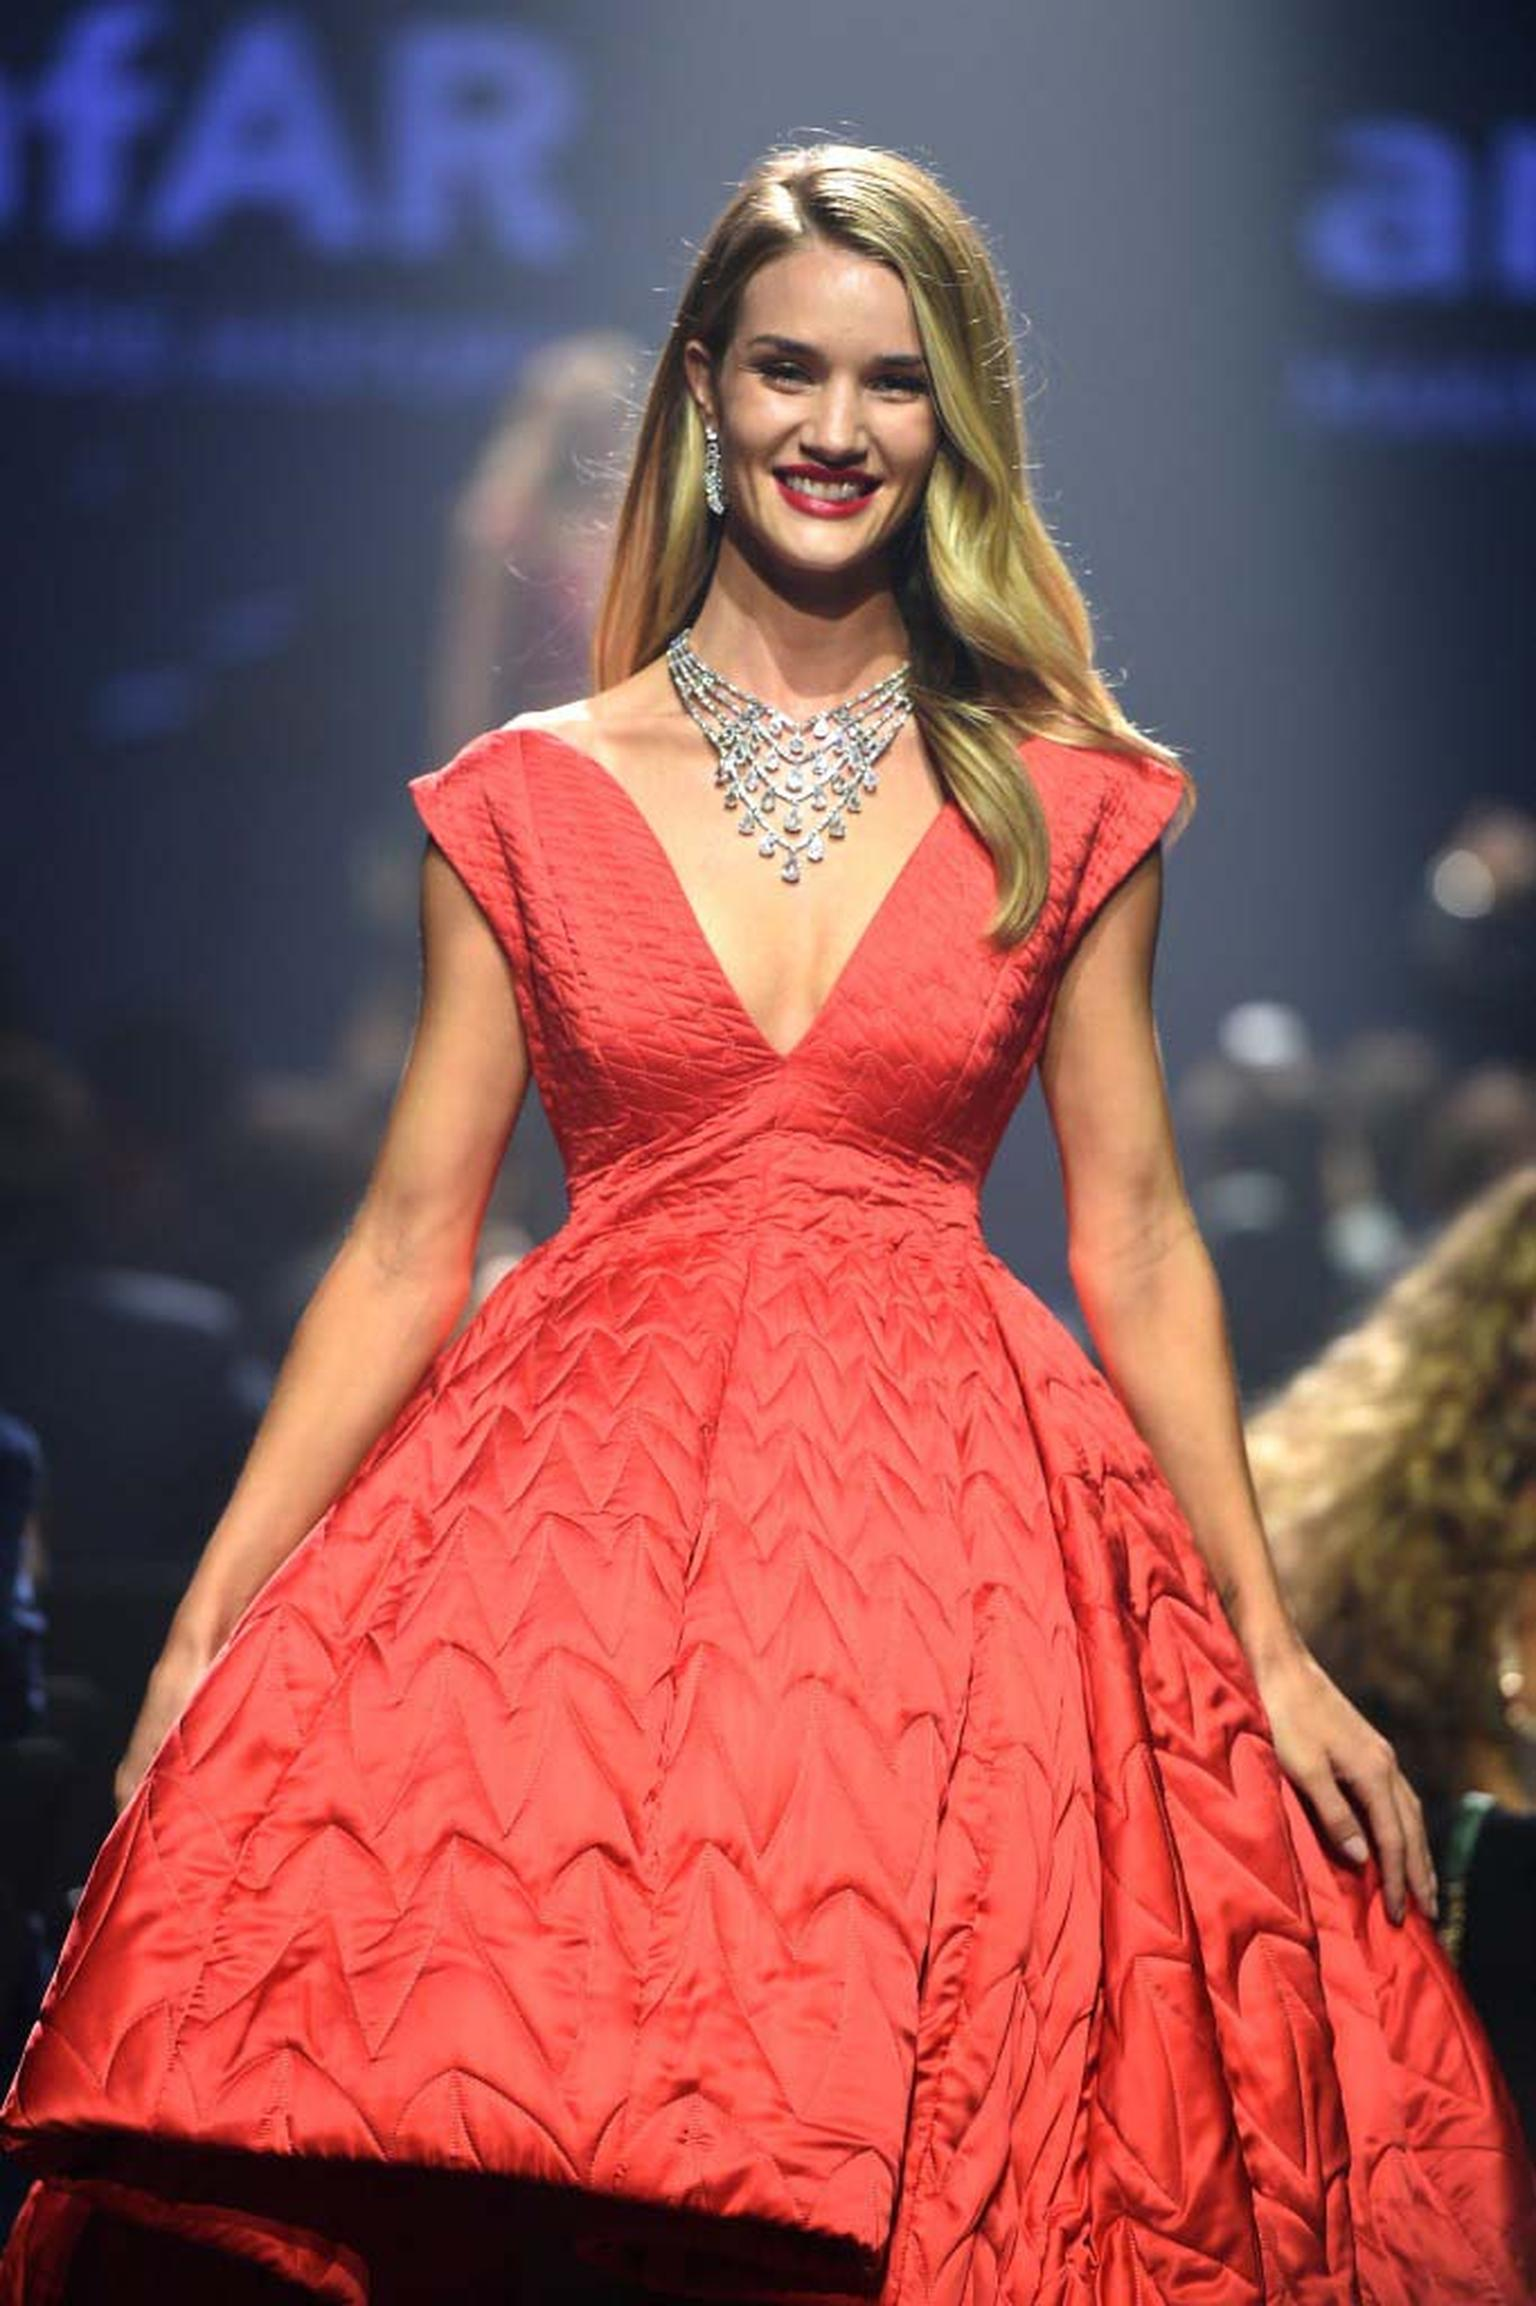 Rosie Huntington-Whiteley beams as she walks down the catwalk in Bulgari jewels. A red-themed fashion show curated by Carine Roitfeld formed part of the 2014 amfAR charity fundraiser in Cannes